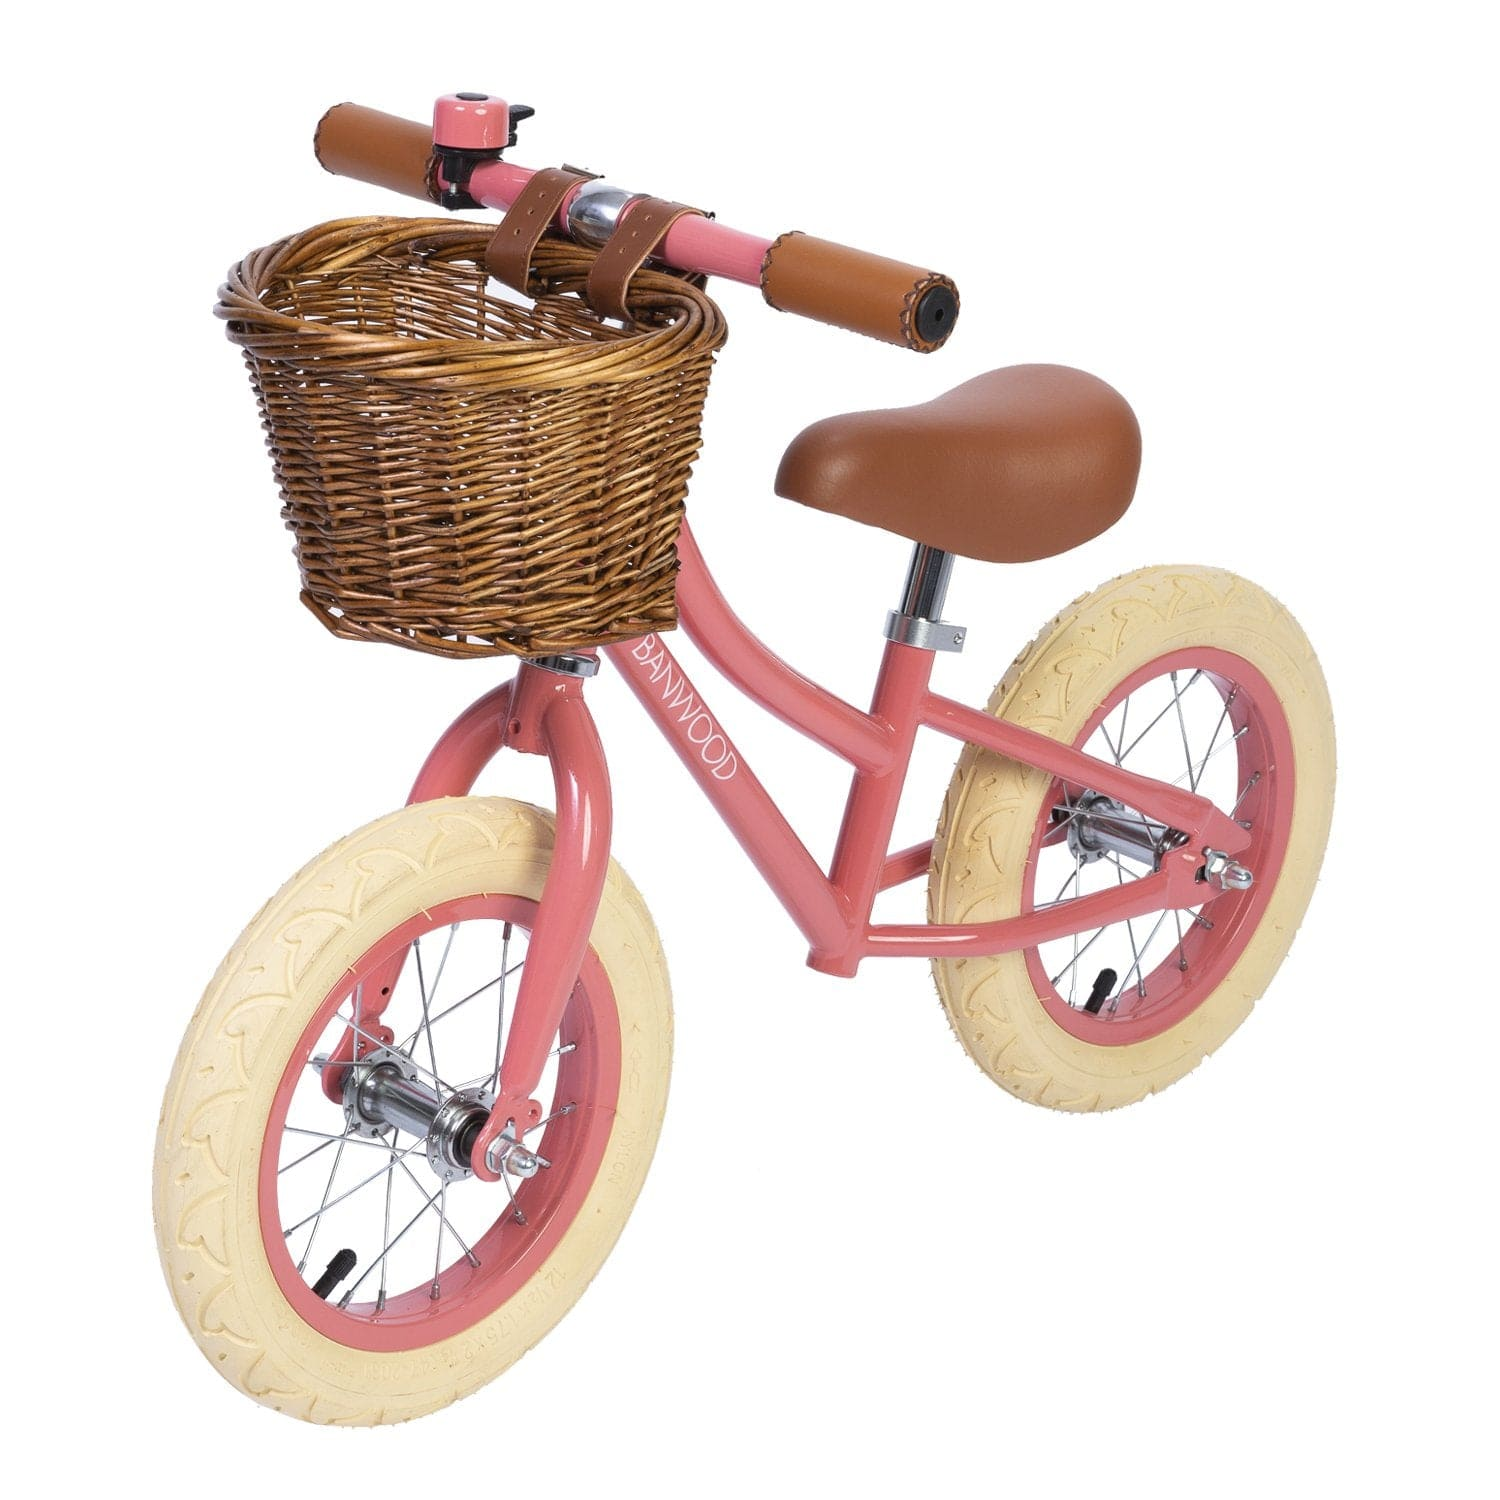 BANWOOD FIRST GO BALANCE BIKE, CORAL - Hello Little Birdie